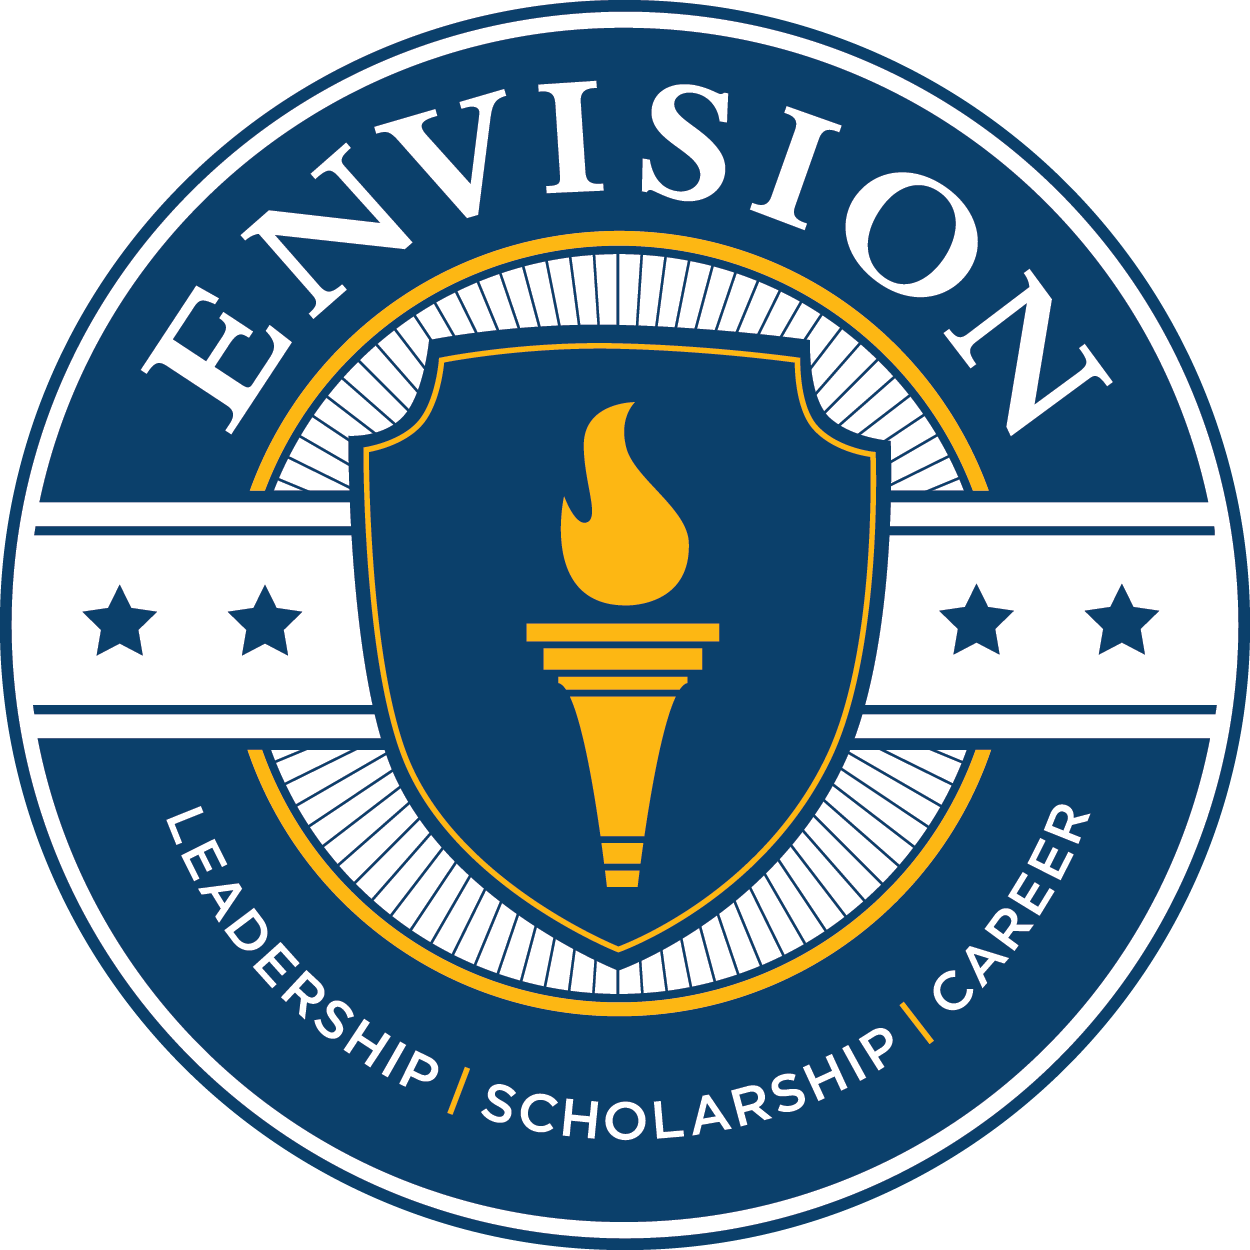 Stem School Virginia: Students Awarded Scholarships To Attend Envision Career